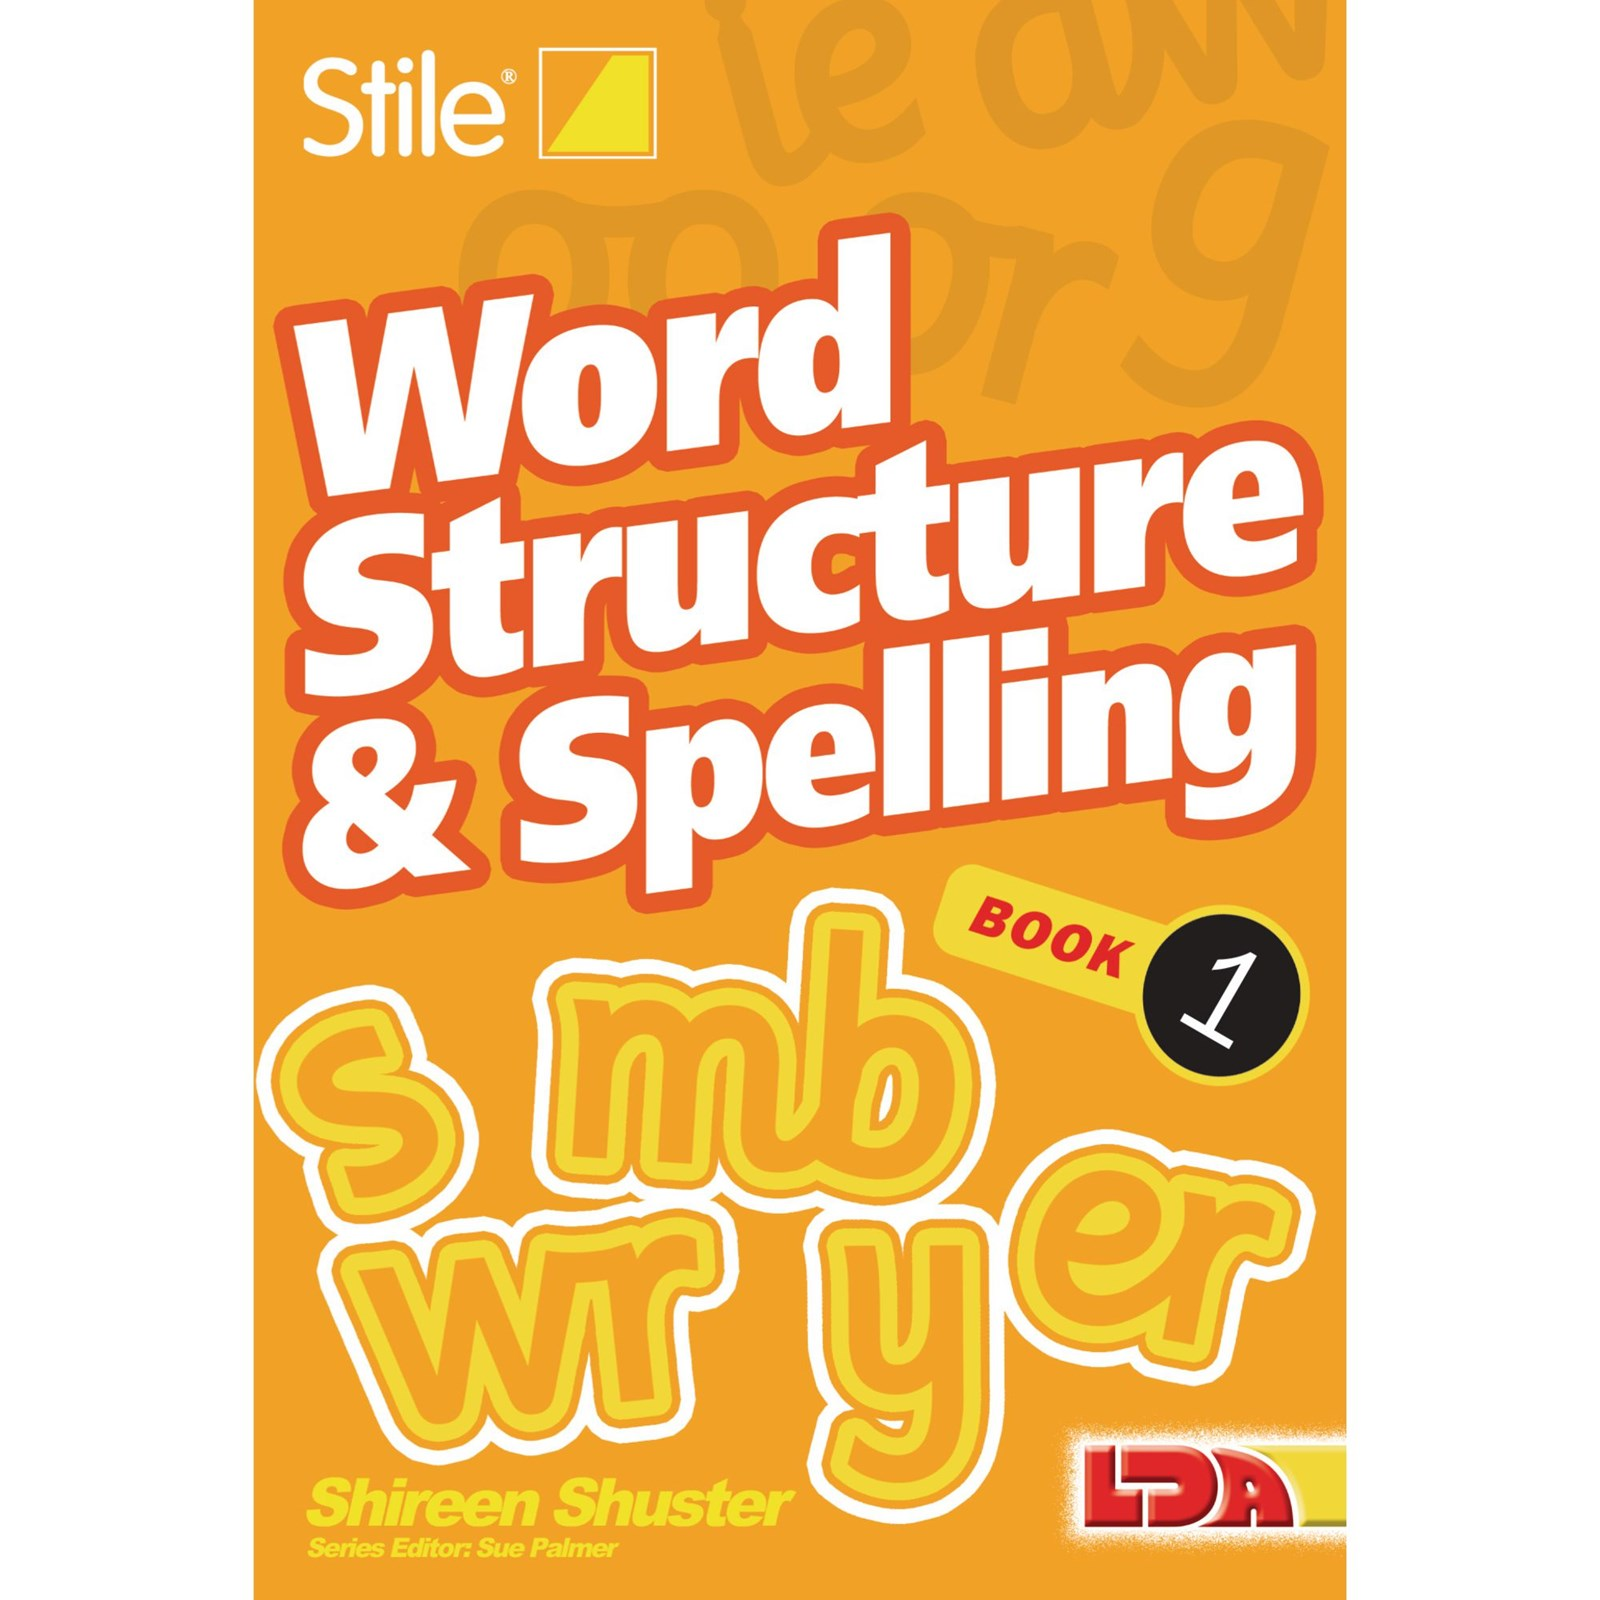 Stile Word Structure & Spelling - Books 1-12